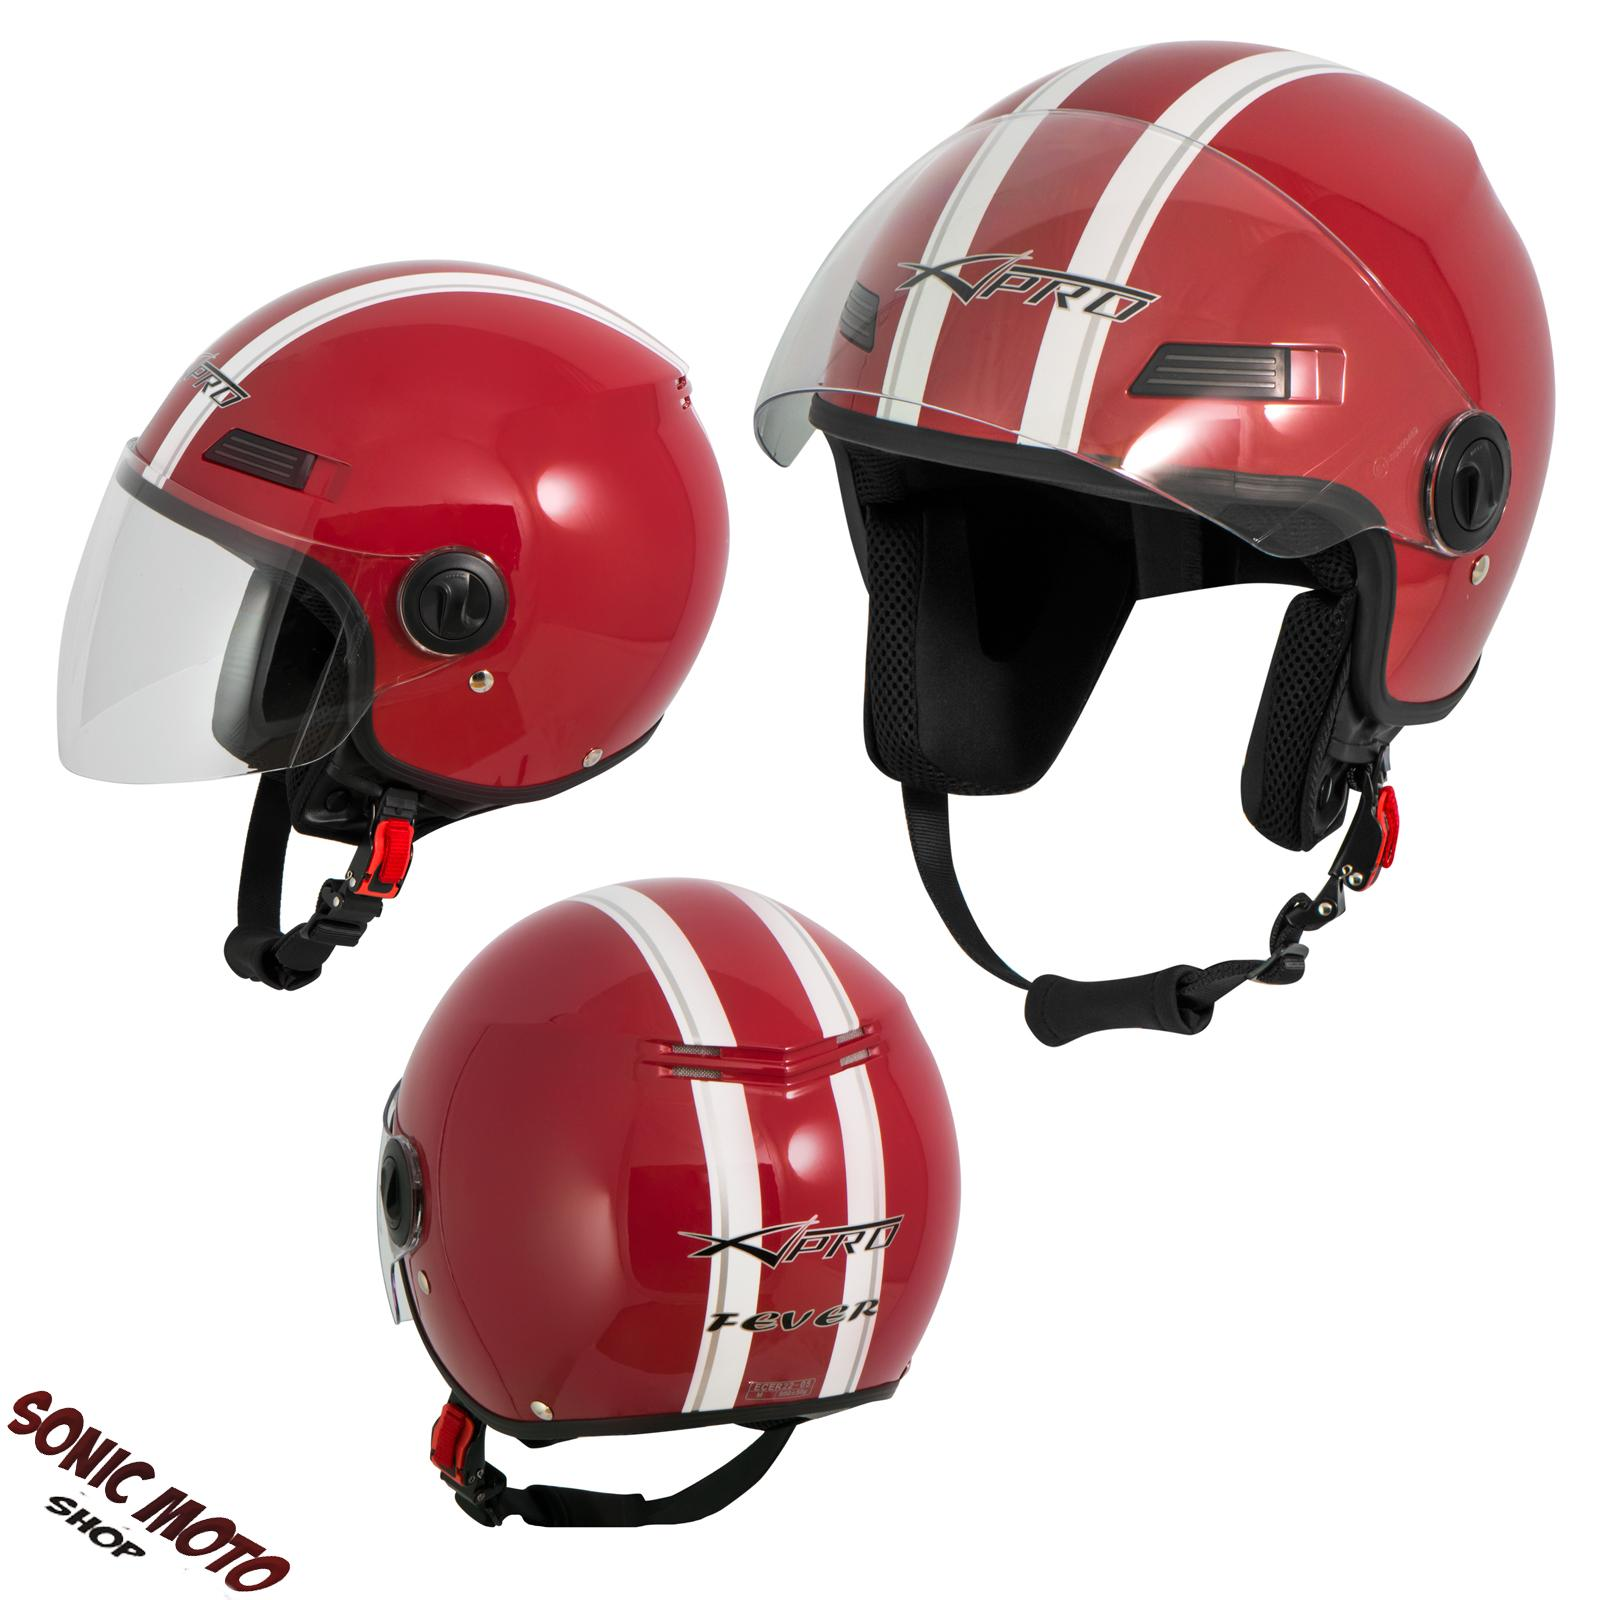 casque avec moto scooter quad jet visiere ece 22 sonicmoto ebay. Black Bedroom Furniture Sets. Home Design Ideas